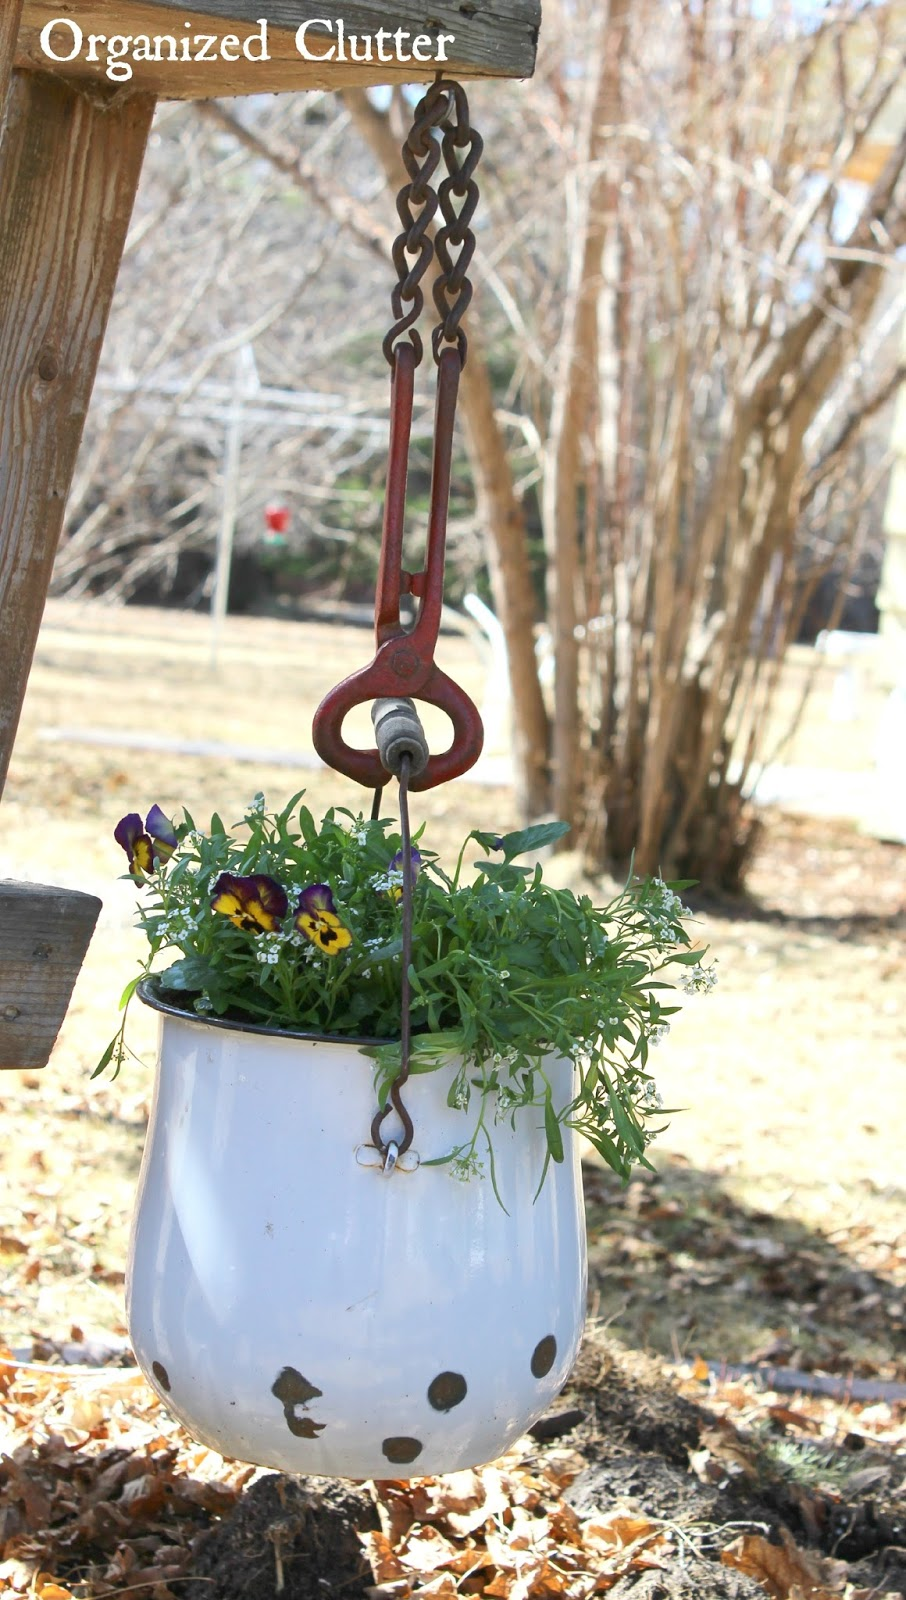 Cattle Nose Clamp Flower Pot Hook www.organizedclutter.net